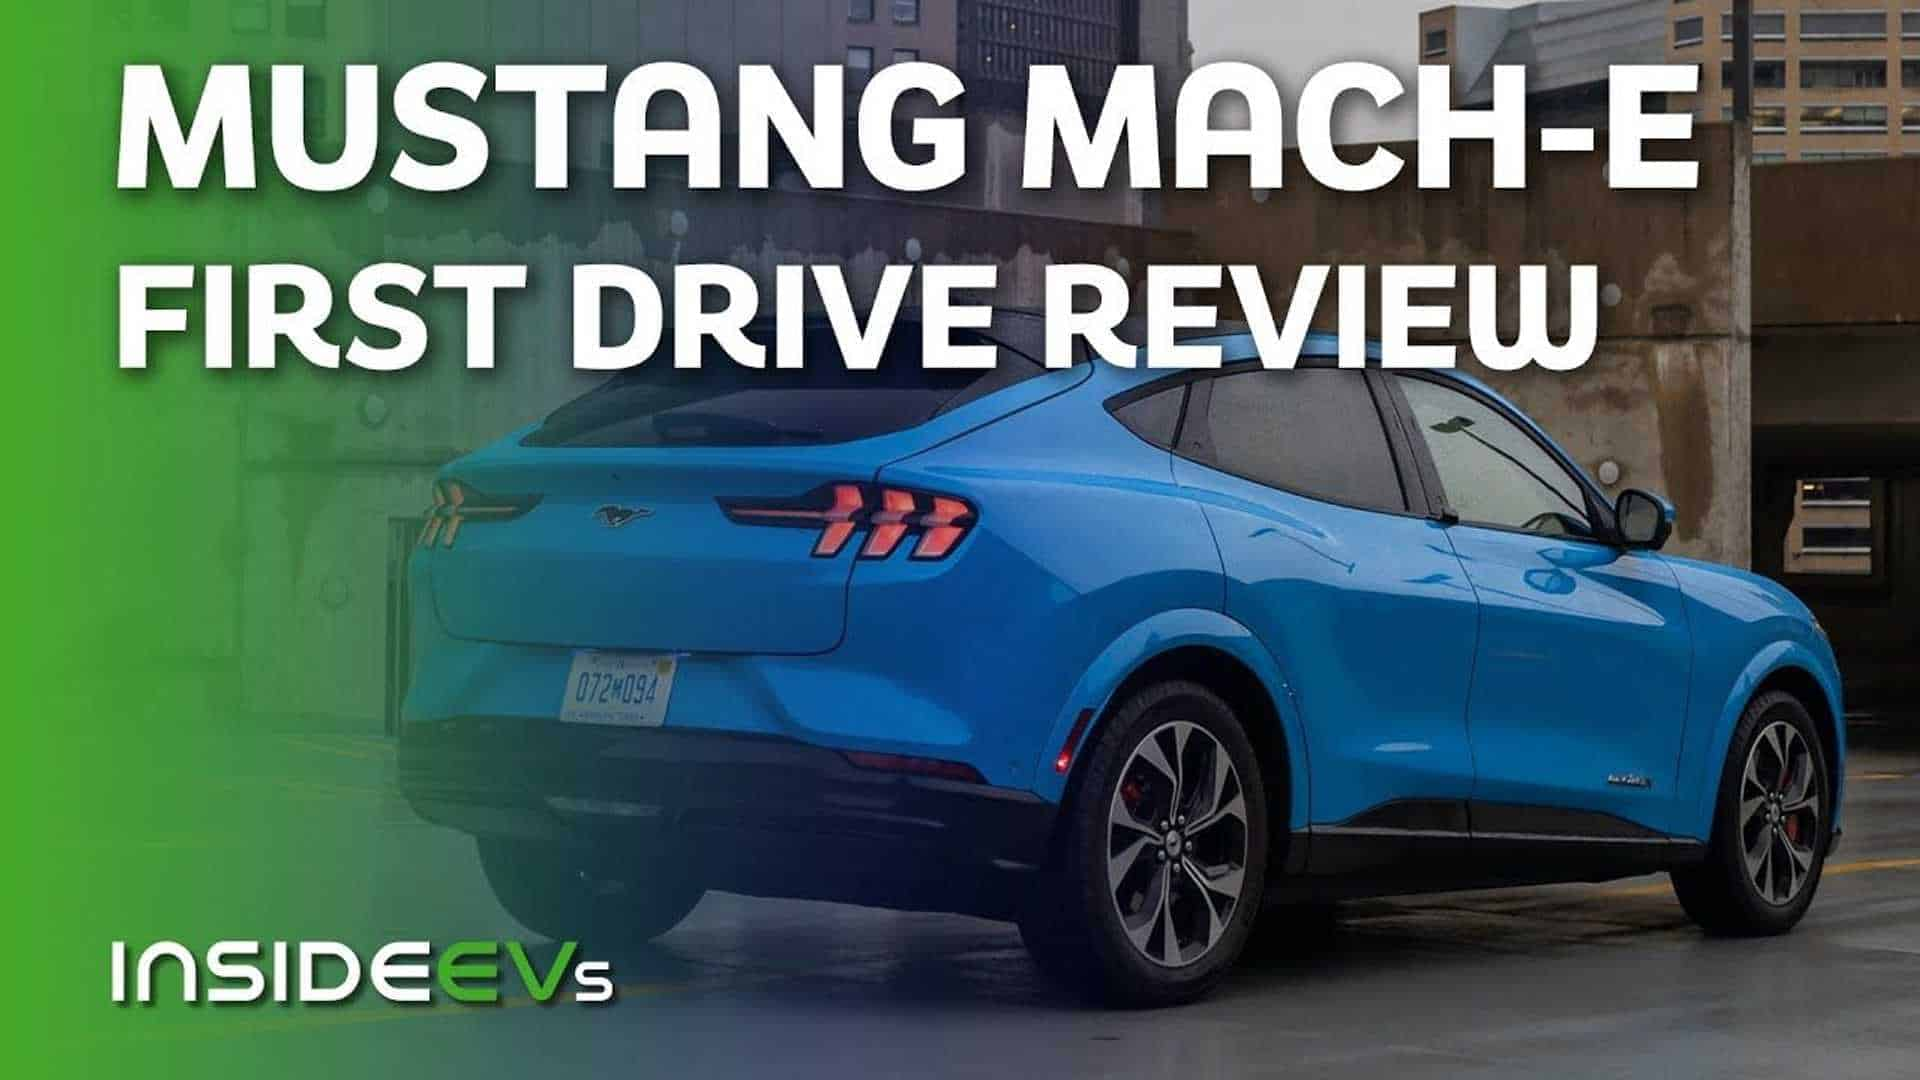 Mustang Mach-E First Drive Review: Deserving Of The Name?